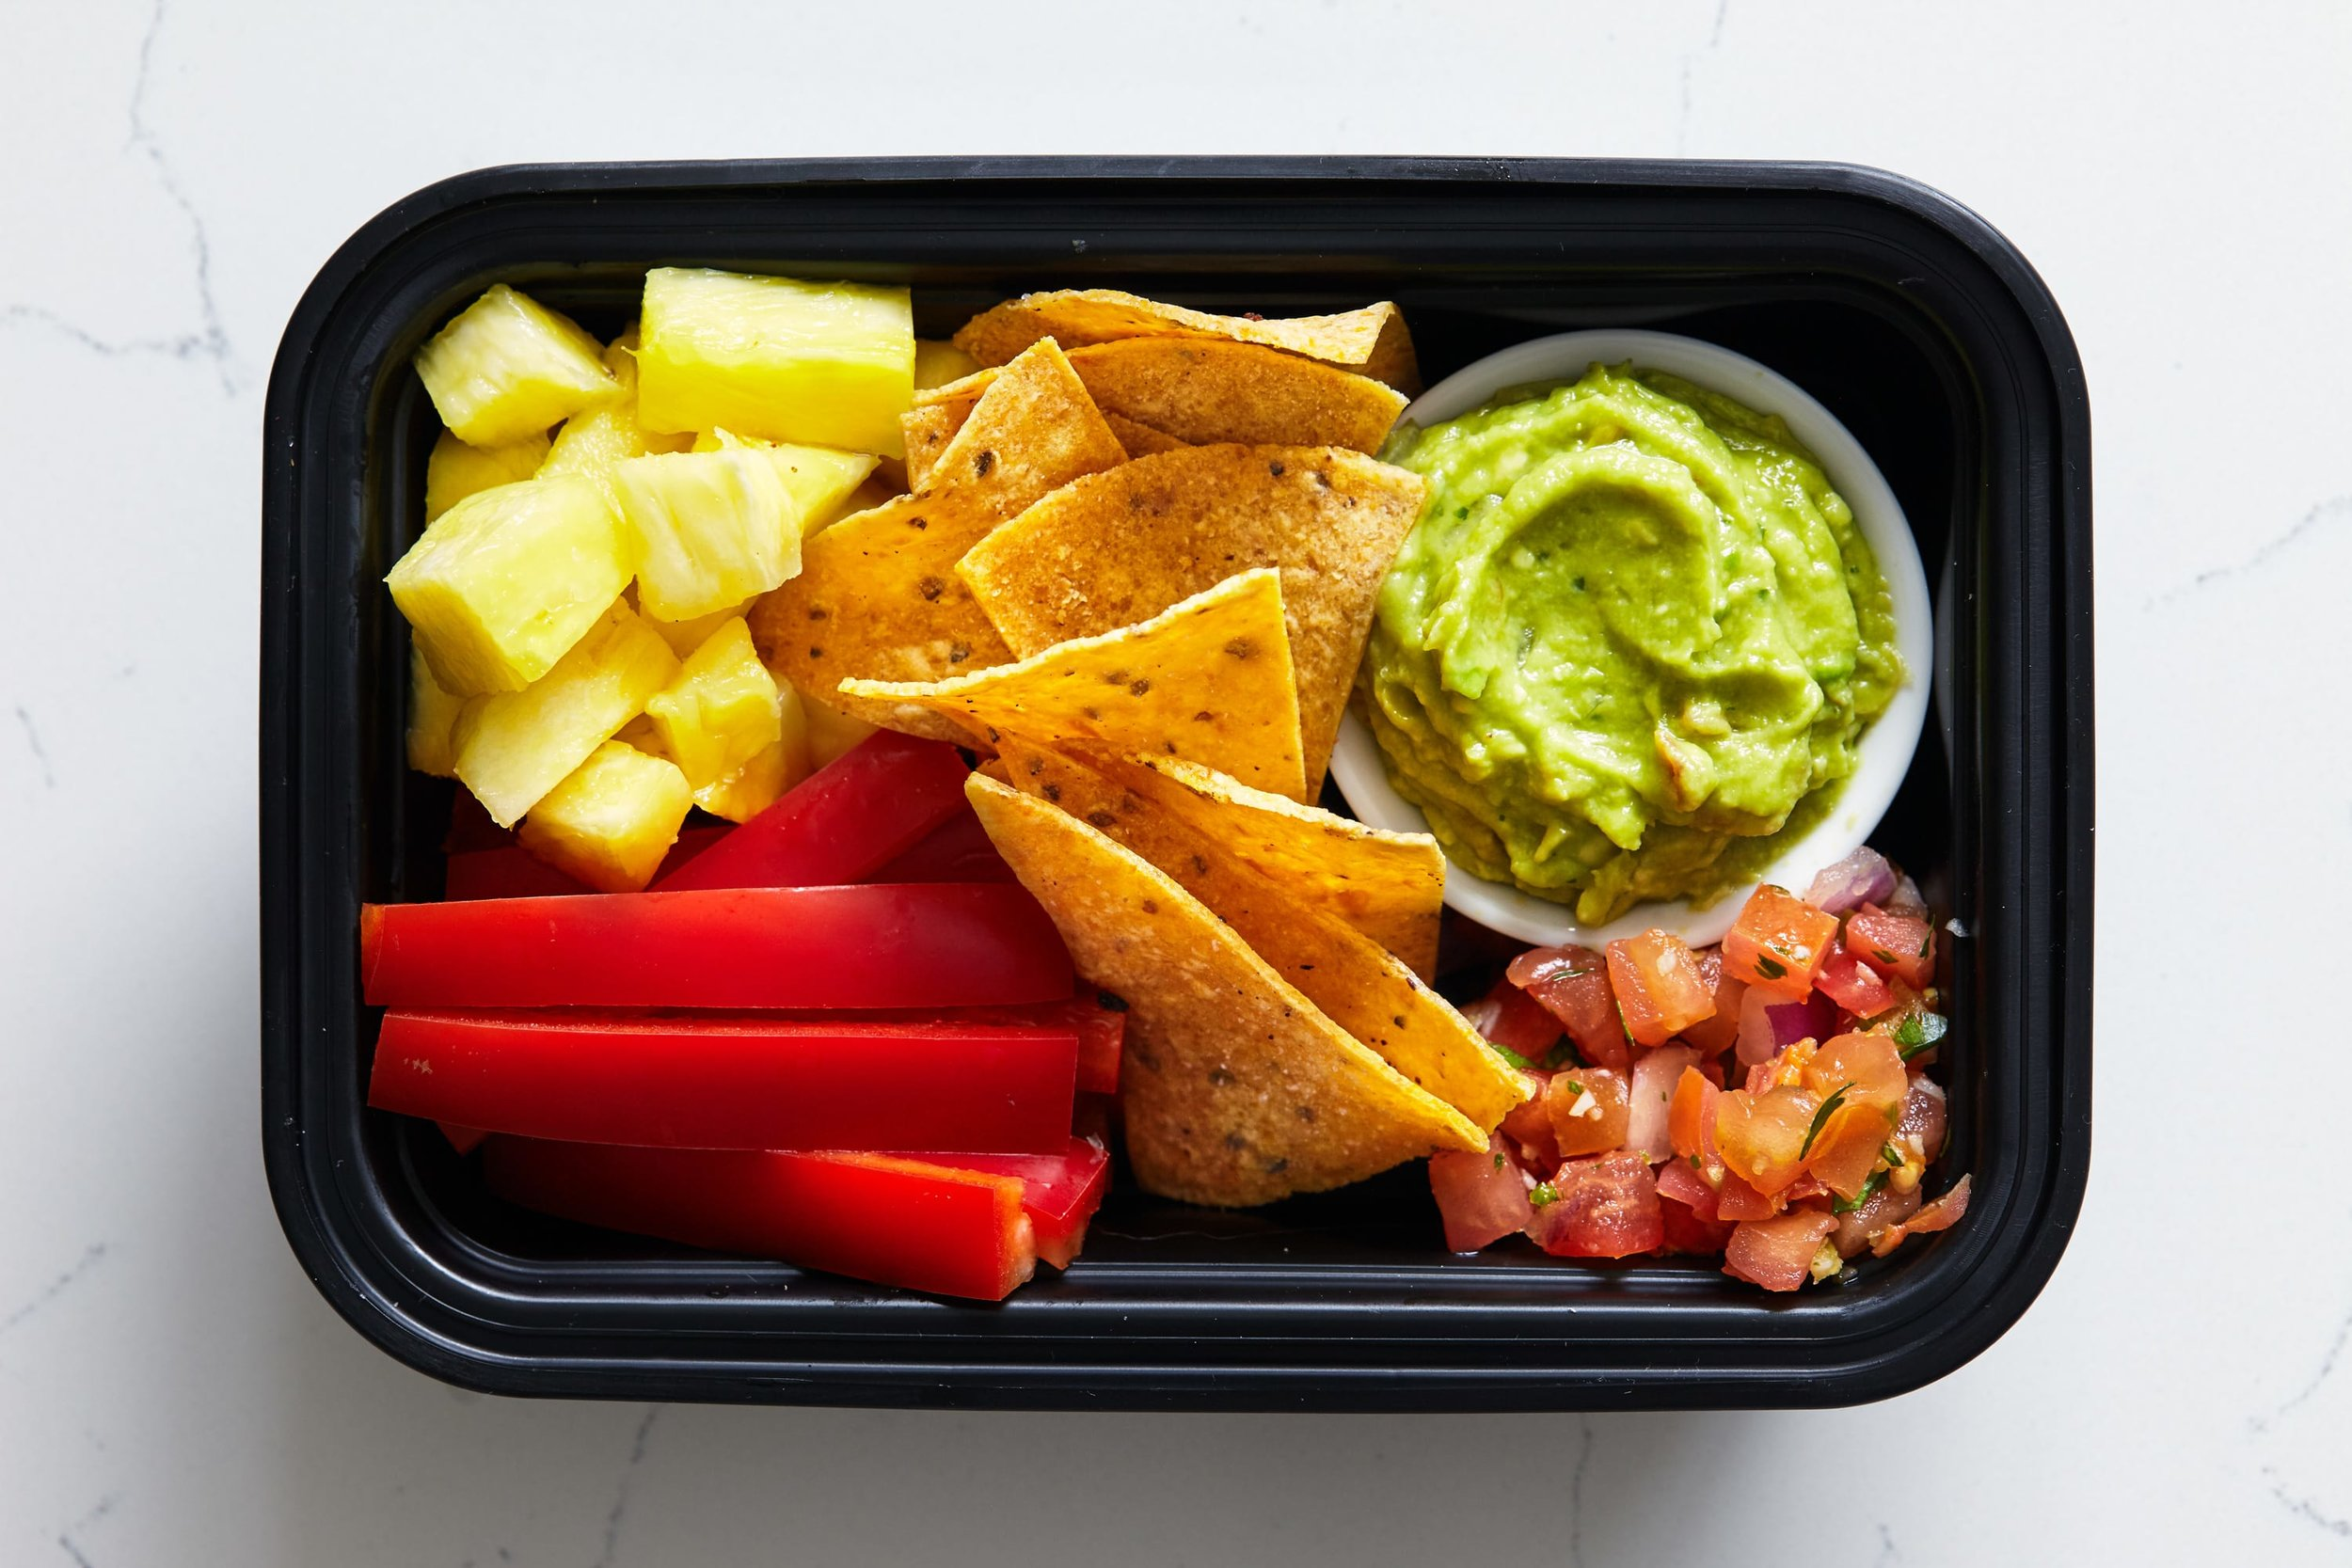 Chips and Dips Snack Box.jpg